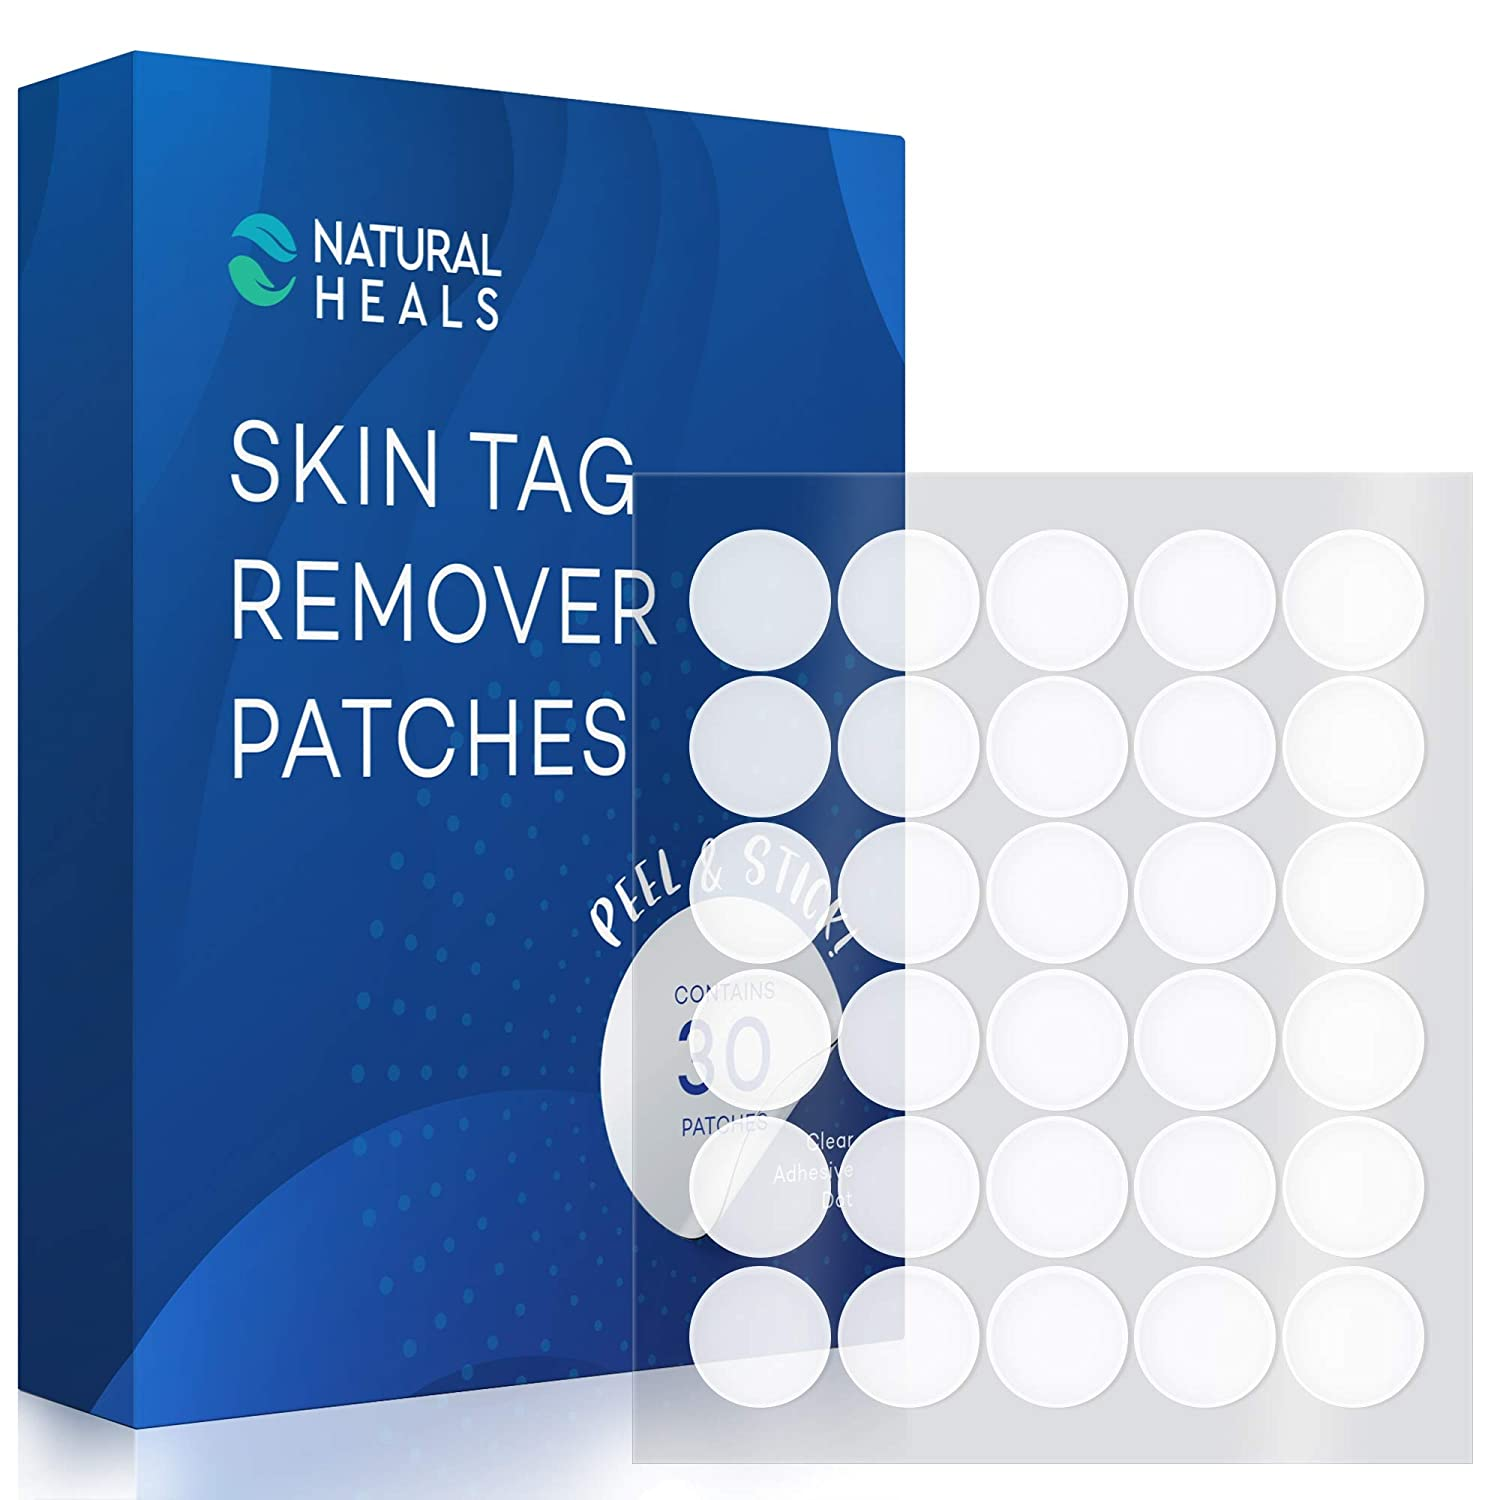 Natural Heals Skin Tag Remover Patches, Mole Remover Set 30 patches, Tags dries and fall away, Natural Ingredients, improved formulation skin tag remover